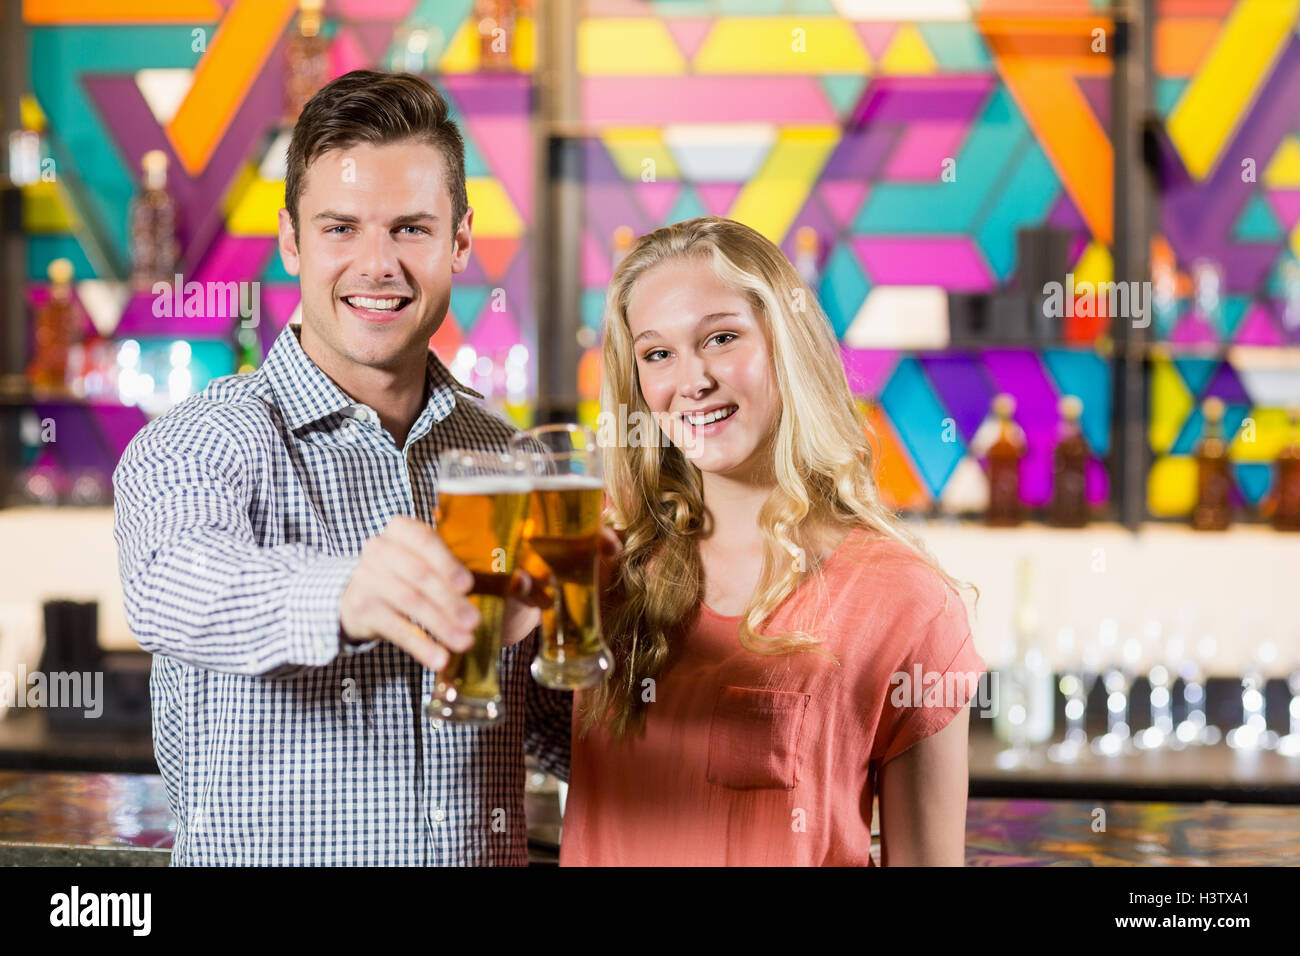 Couple showing a glass of beer in bar - Stock Image